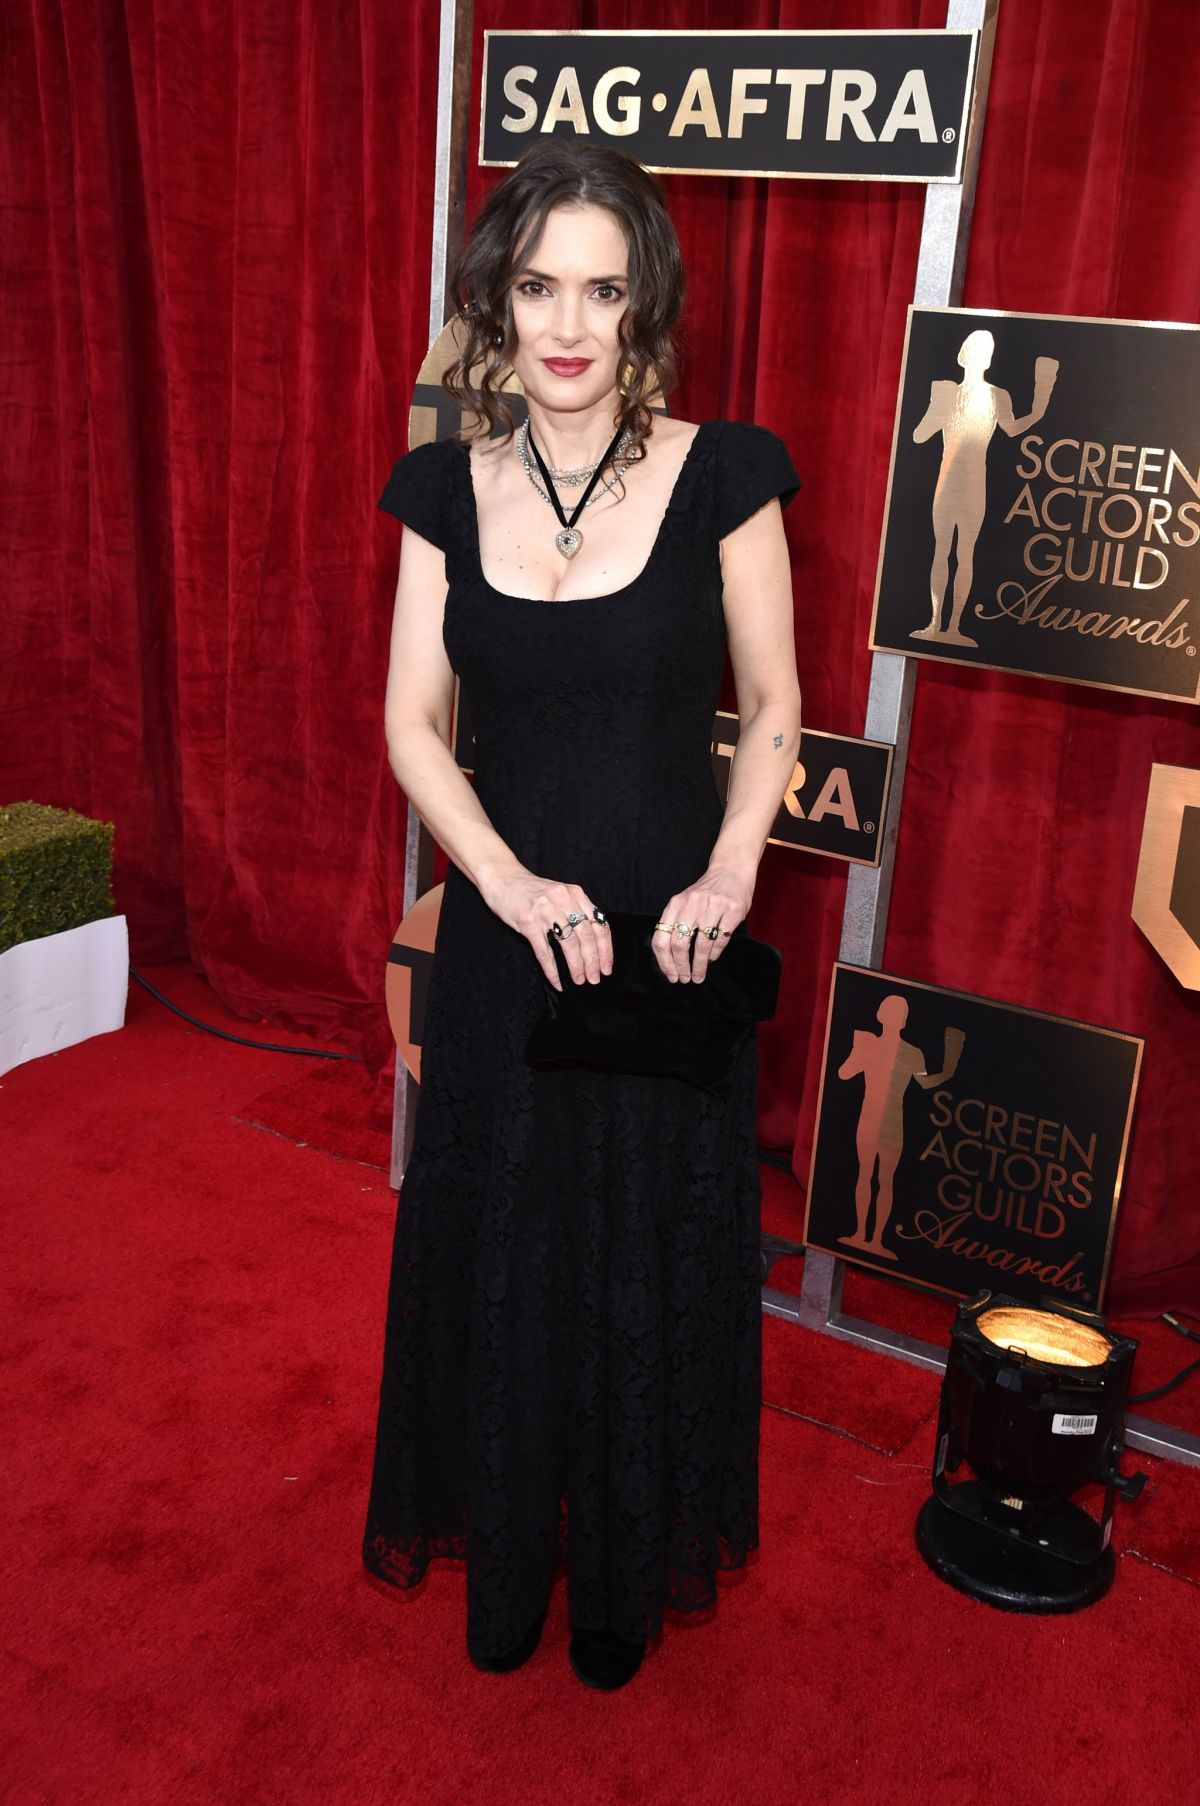 WINONA RYDER at 23rd Annual Screen Actors Guild Awards in Los Angeles 01/29/2017